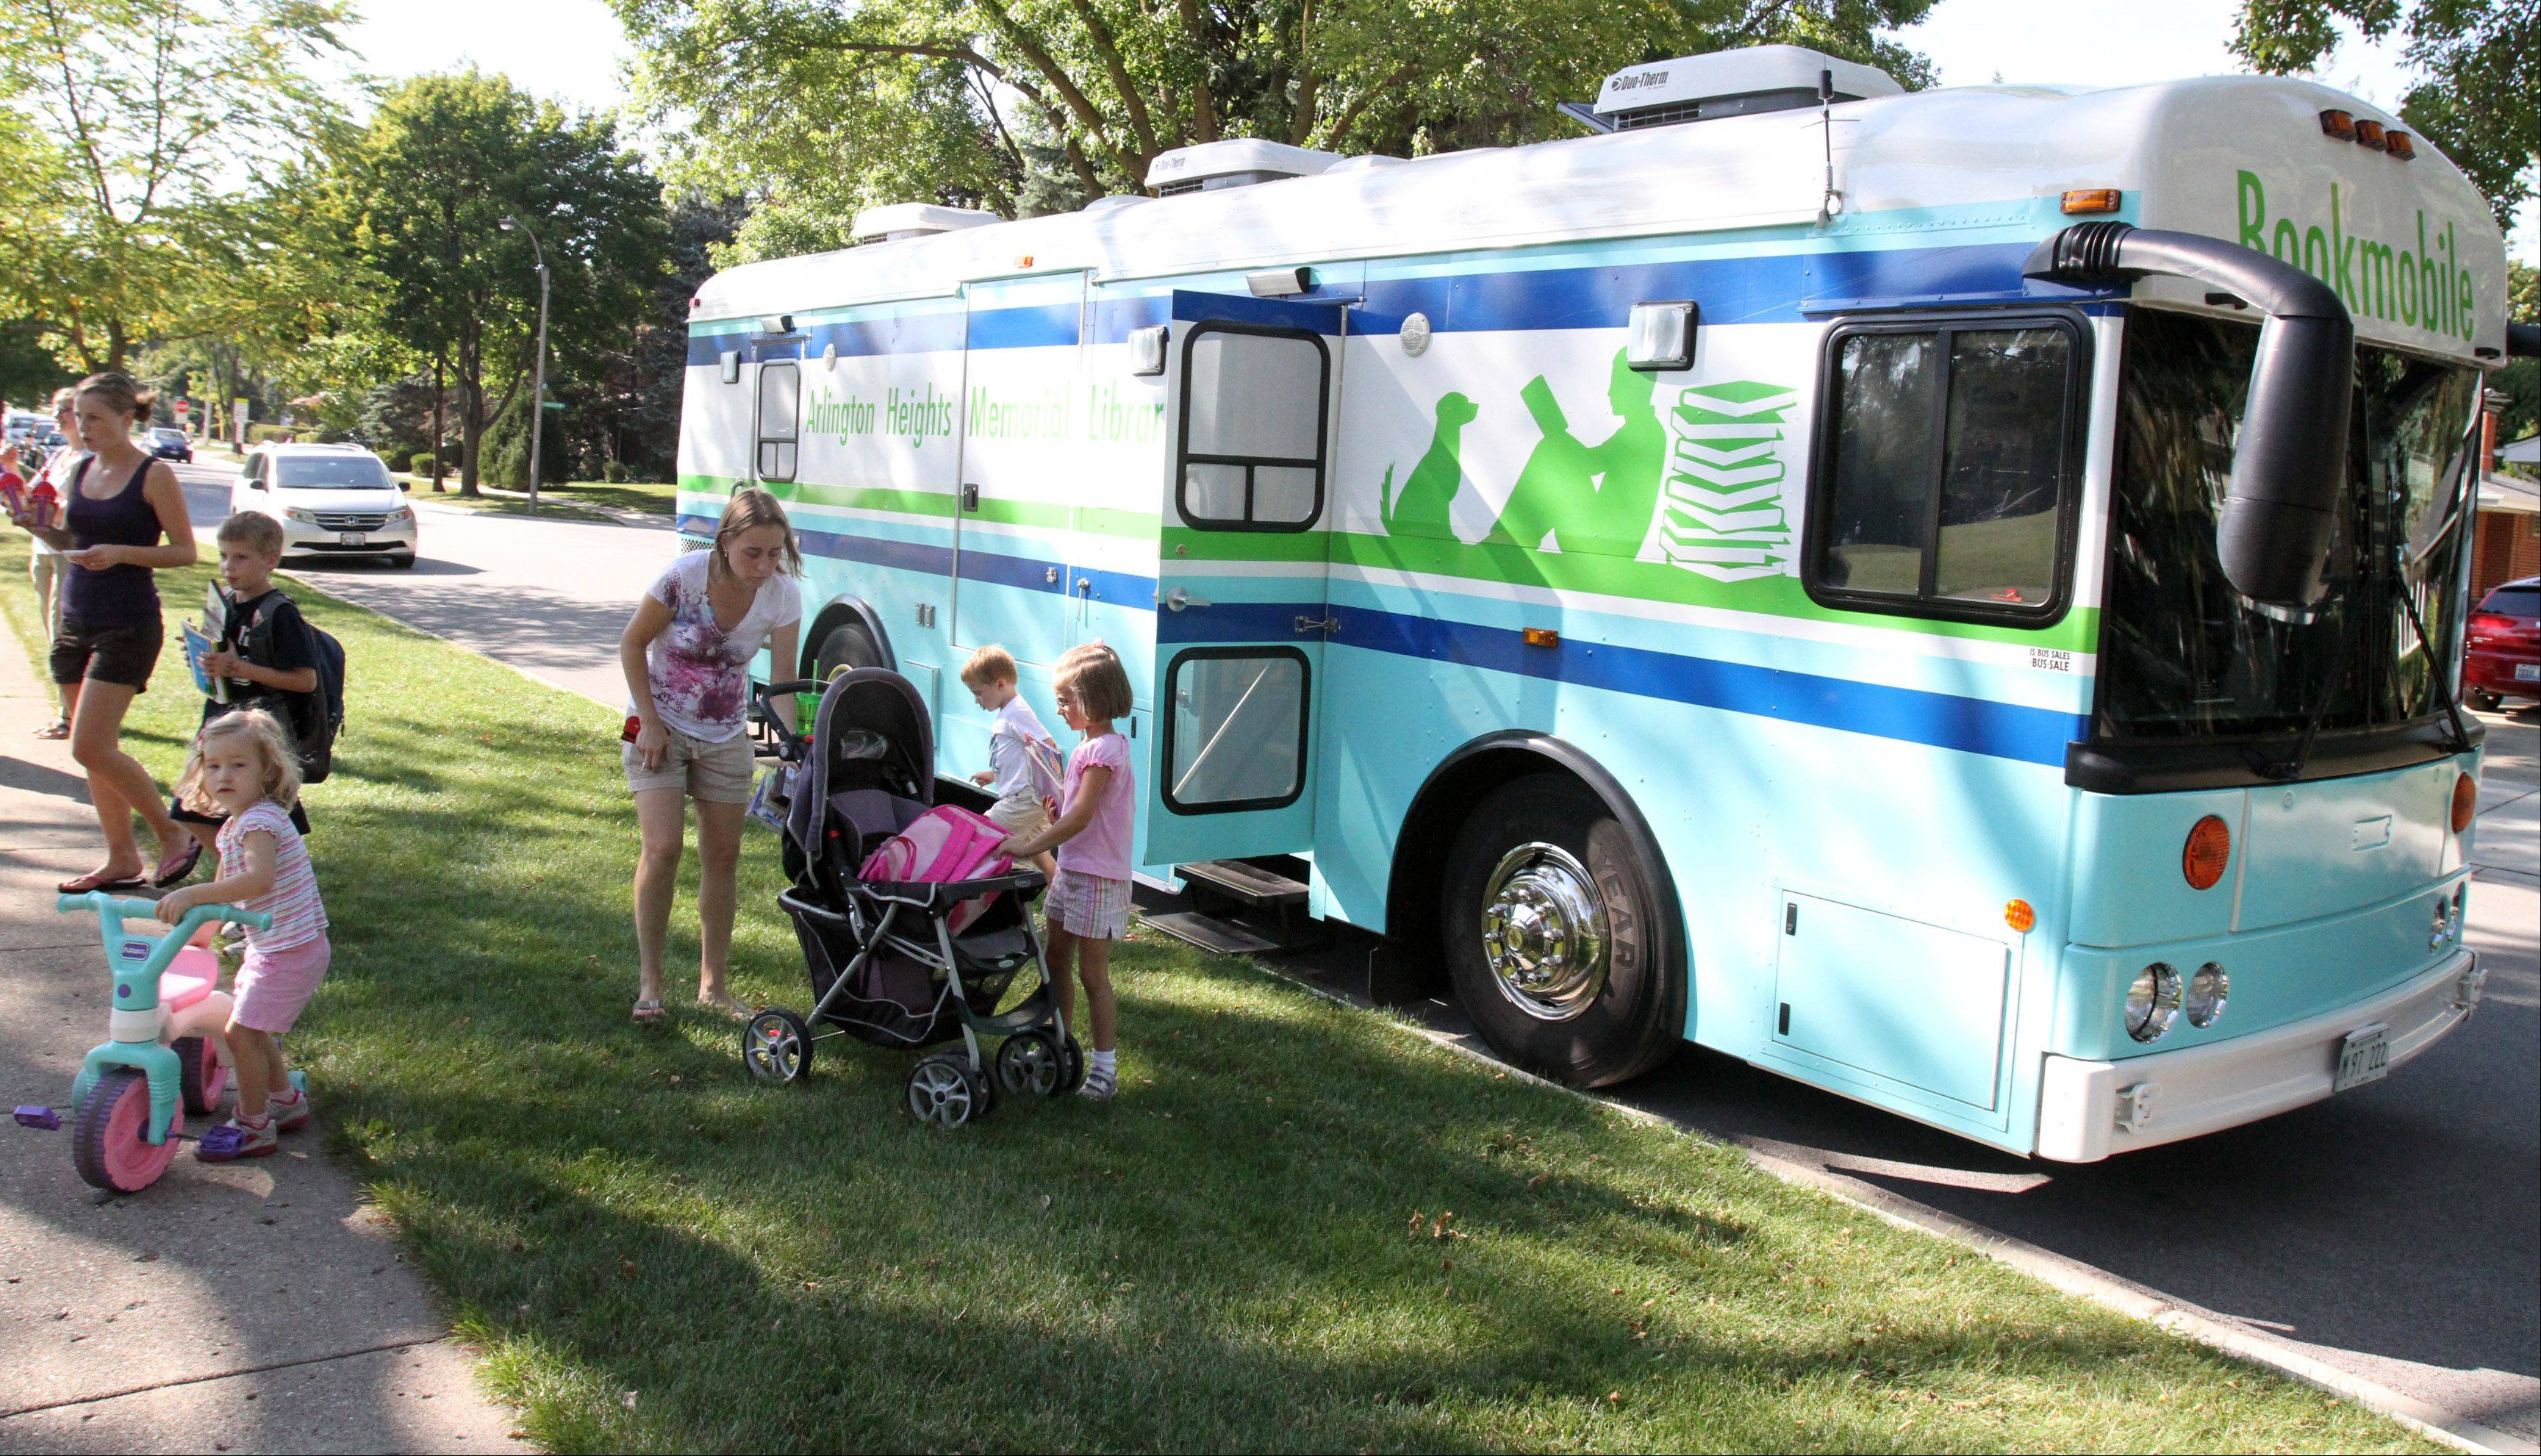 The Arlington Heights Memorial Library bookmobile is parked near Olive-Mary Stitt Elementary School in Arlington Heights in one of its 50 monthly stops.